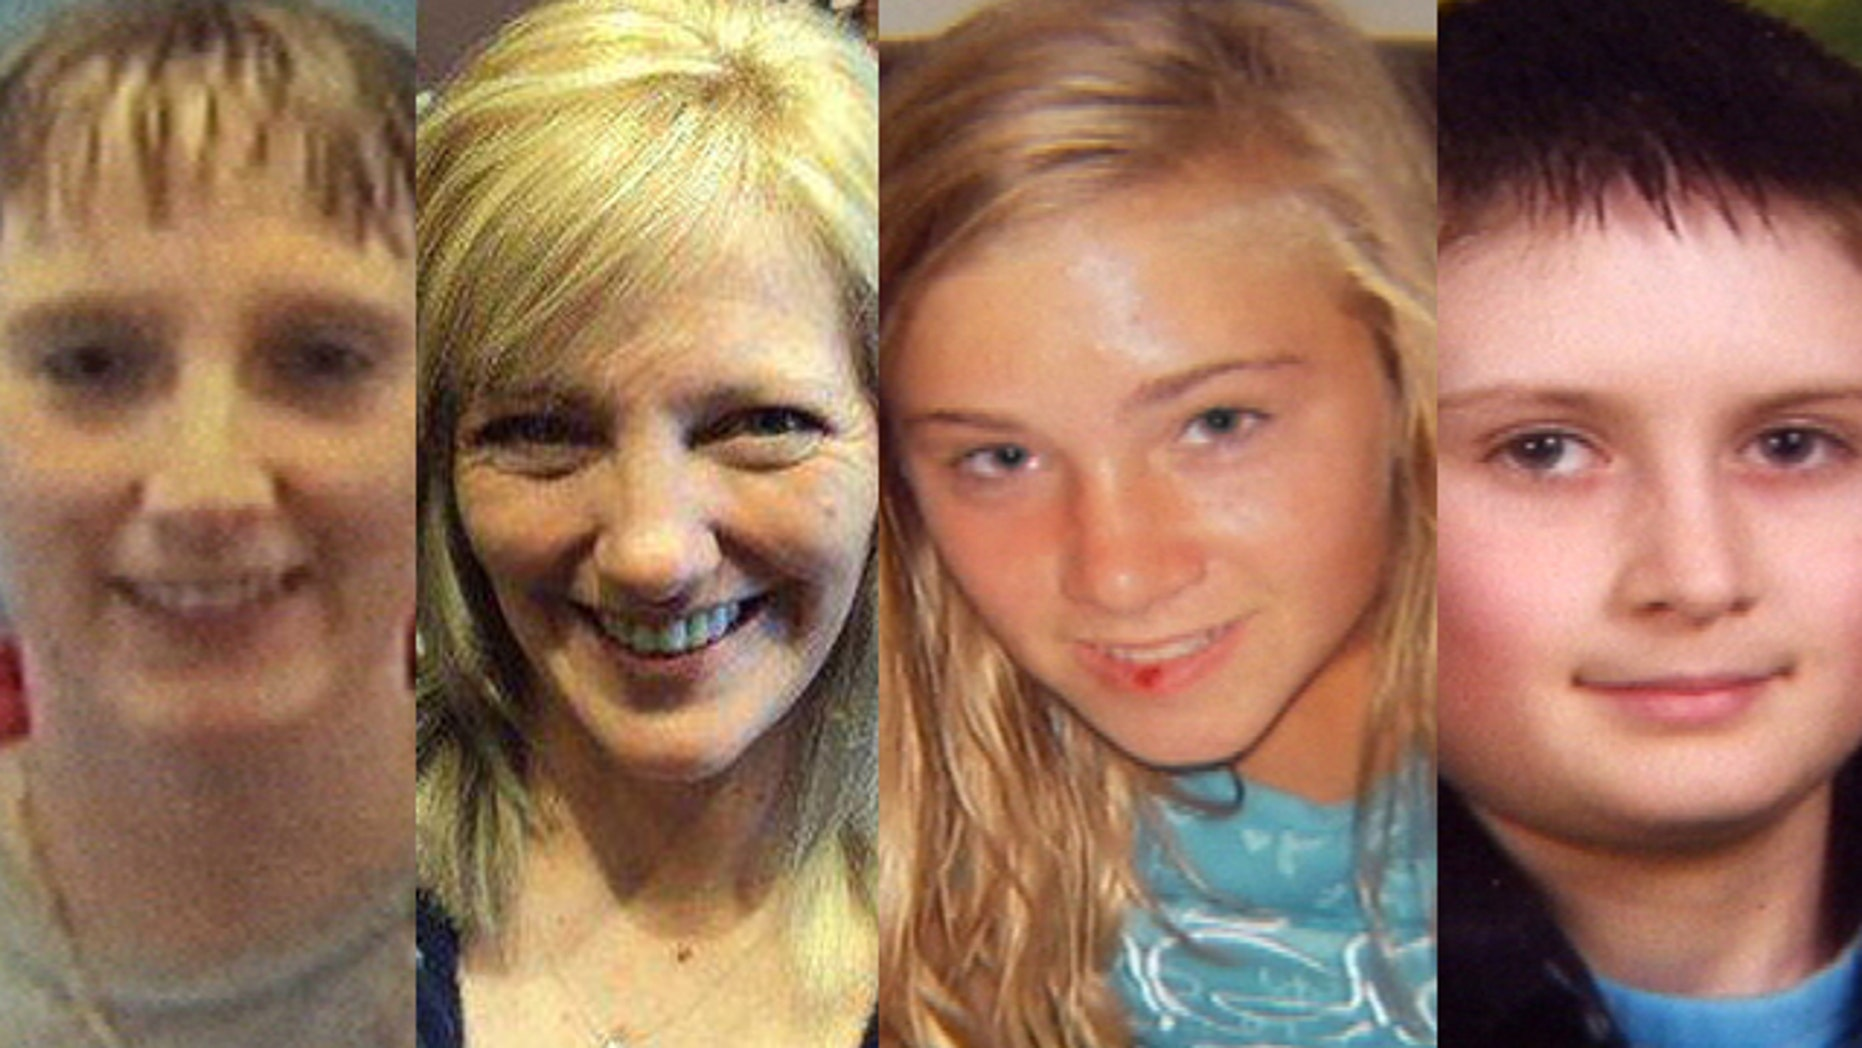 Investigators are continuing to question people and evaluate evidence in the search for Tina Herrmann, Stephanie Sprang, Sarah Maynard and Kody Maynard.